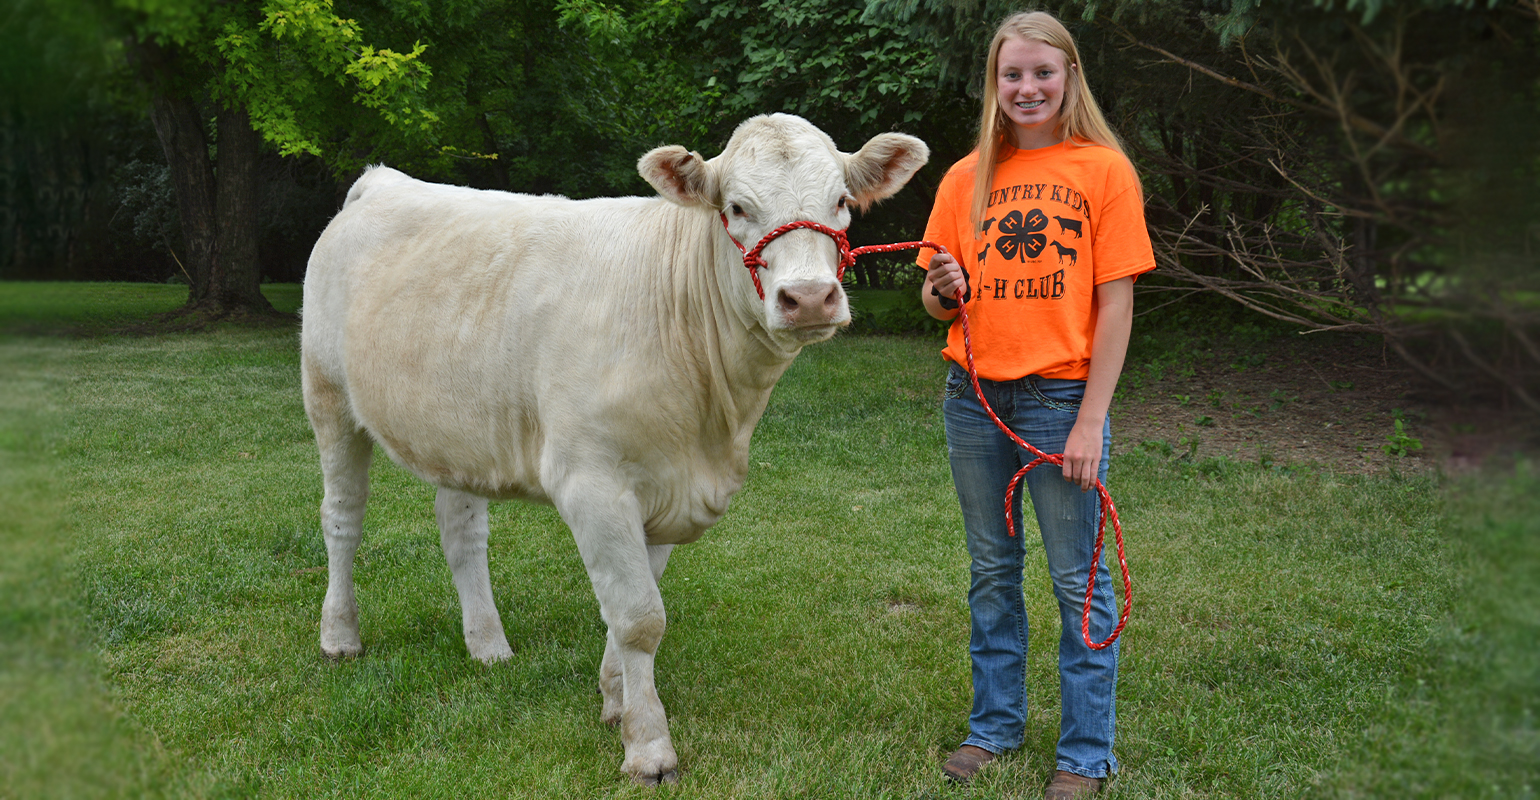 Macy Rohner with Charolais heifer